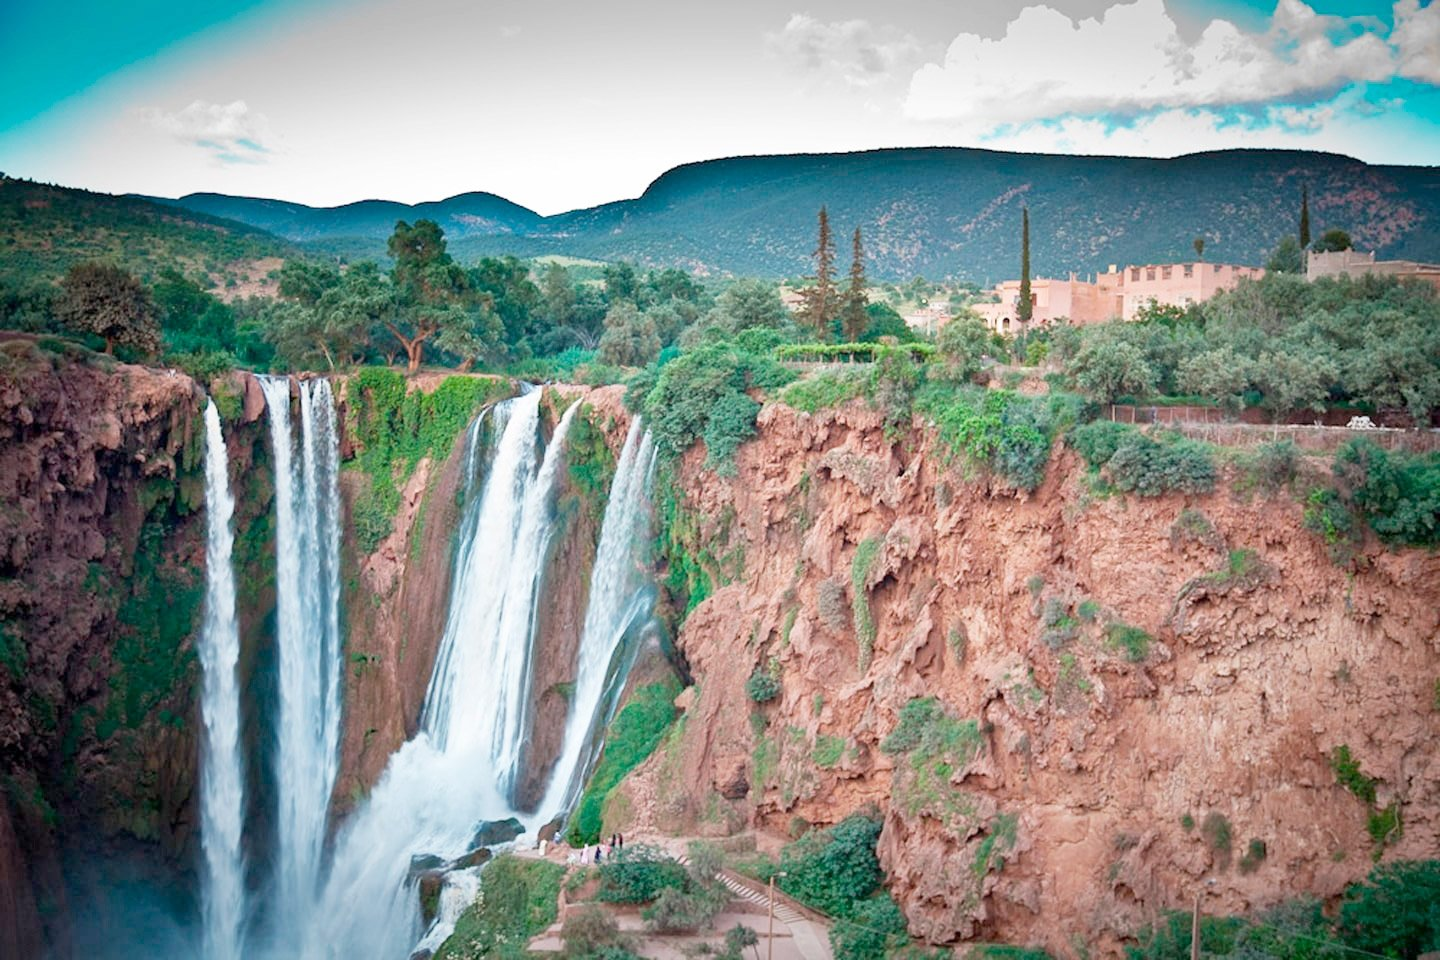 Morocco hiking tour to Ouzoud waterfalls in Morocco